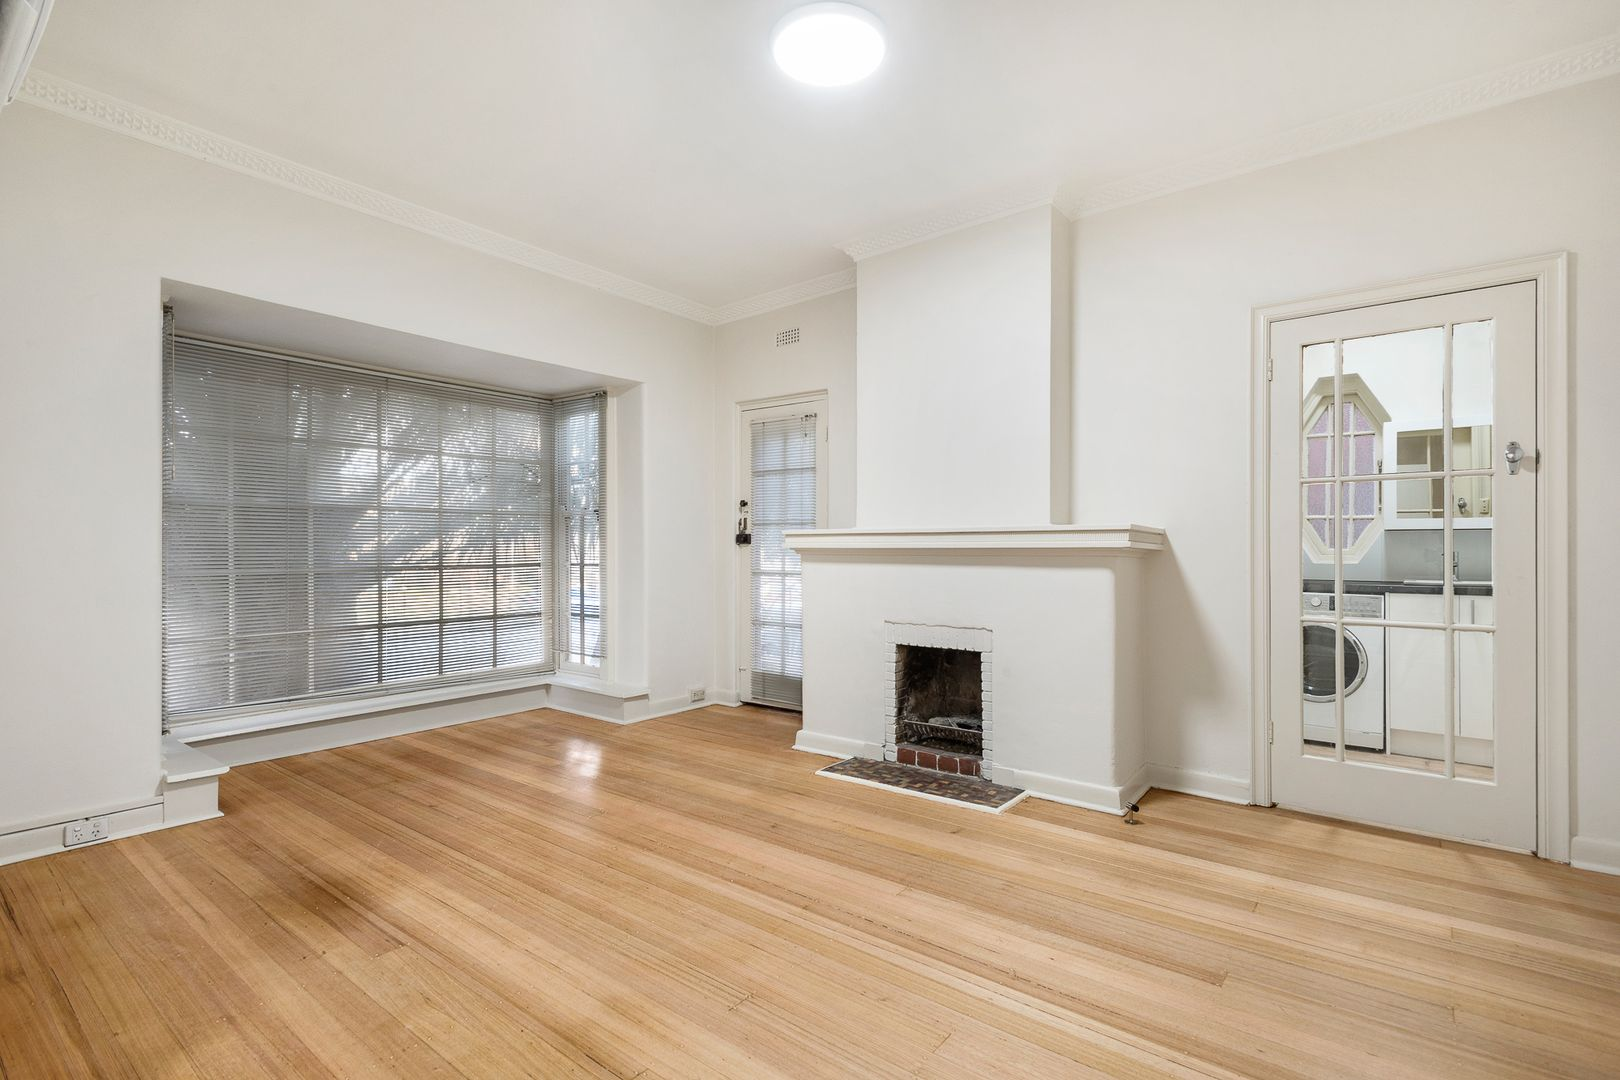 1/60 Toorak  Road West, South Yarra VIC 3141, Image 0